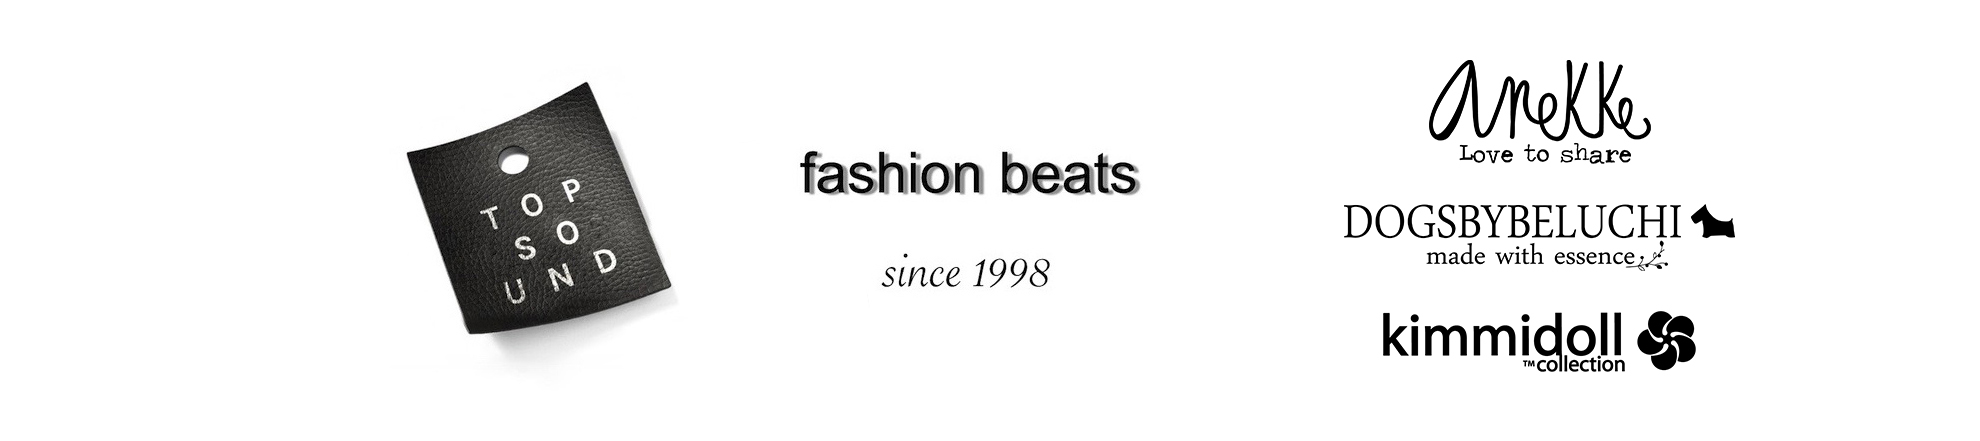 fashion beats